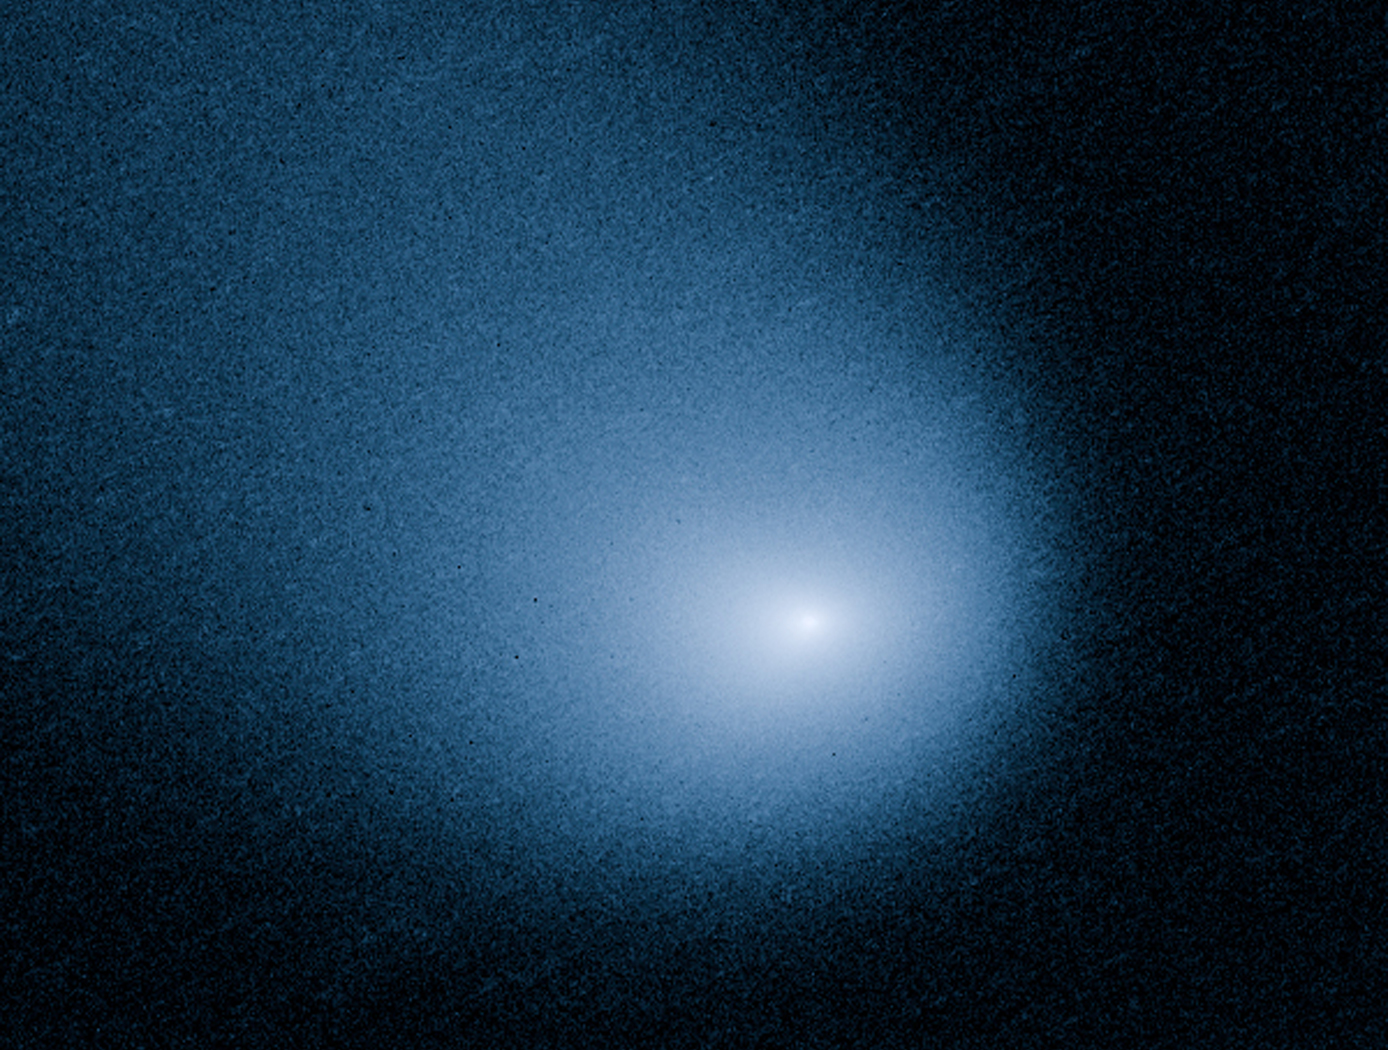 Hubble's View of Comet Siding Spring; Credit: NASA, ESA, and J.-Y. Li (Planetary Science Institute)